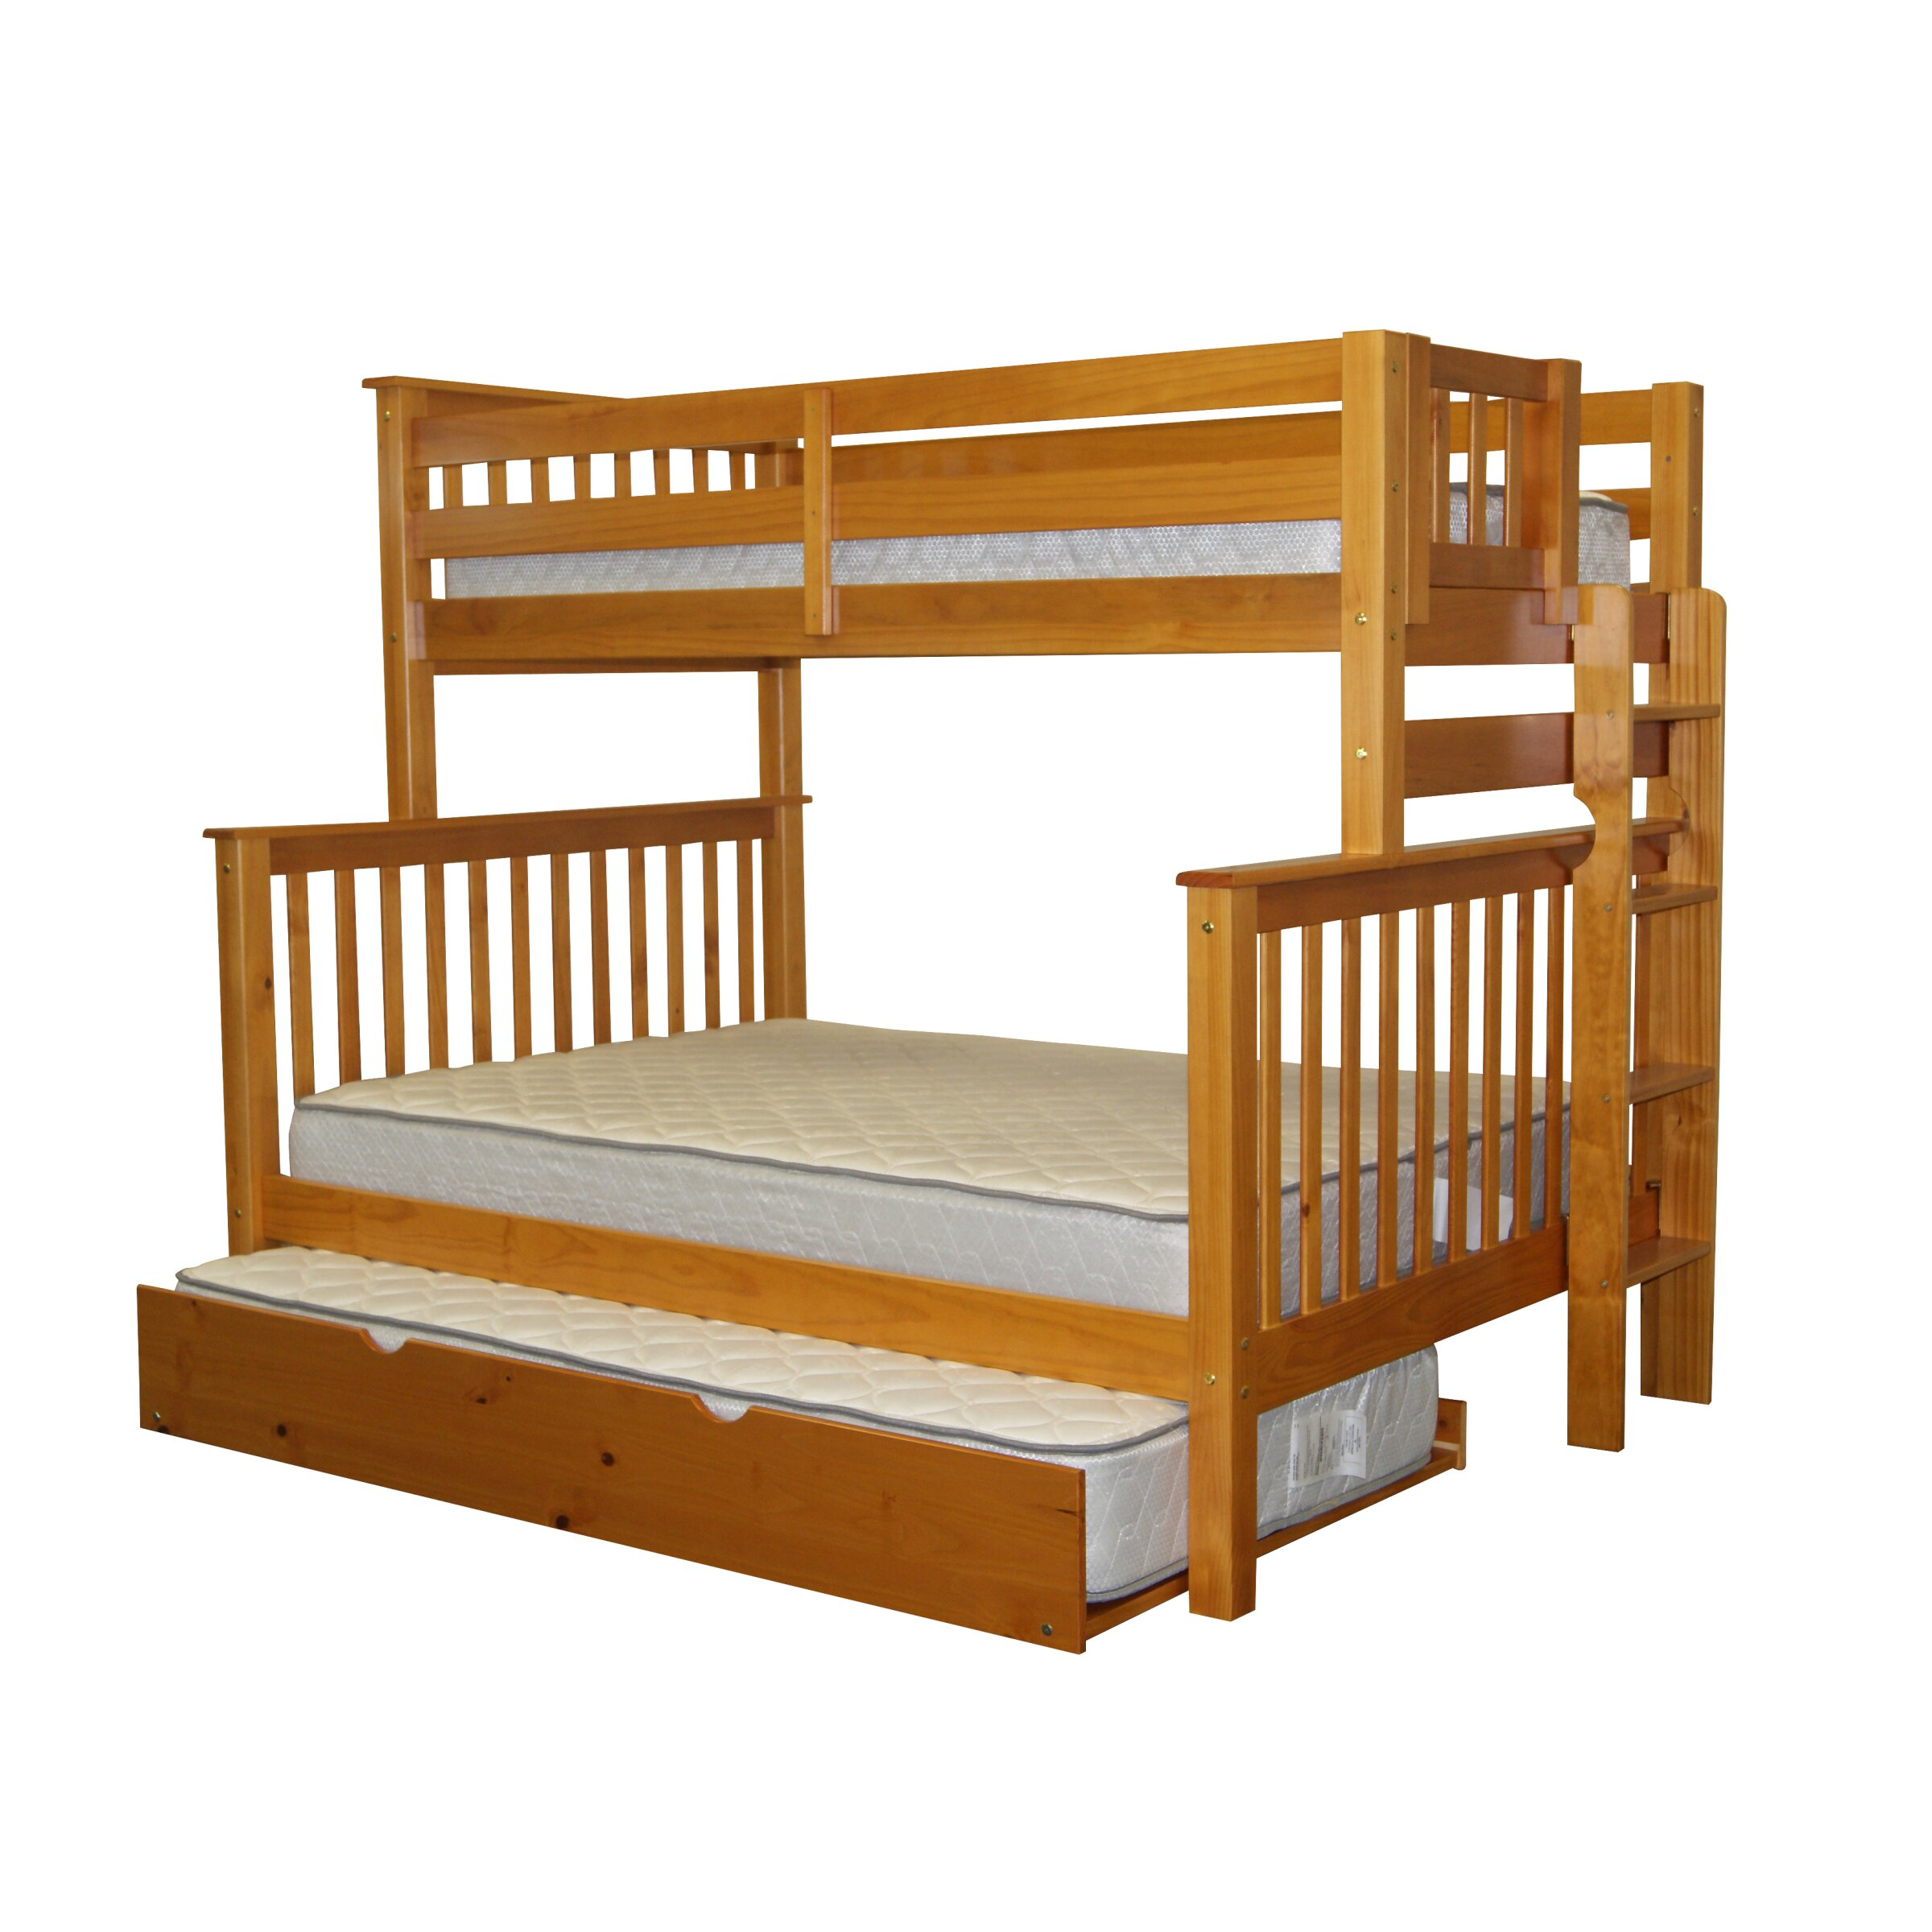 bedz king mission twin over full bunk bed with trundle reviews wayfair. Black Bedroom Furniture Sets. Home Design Ideas